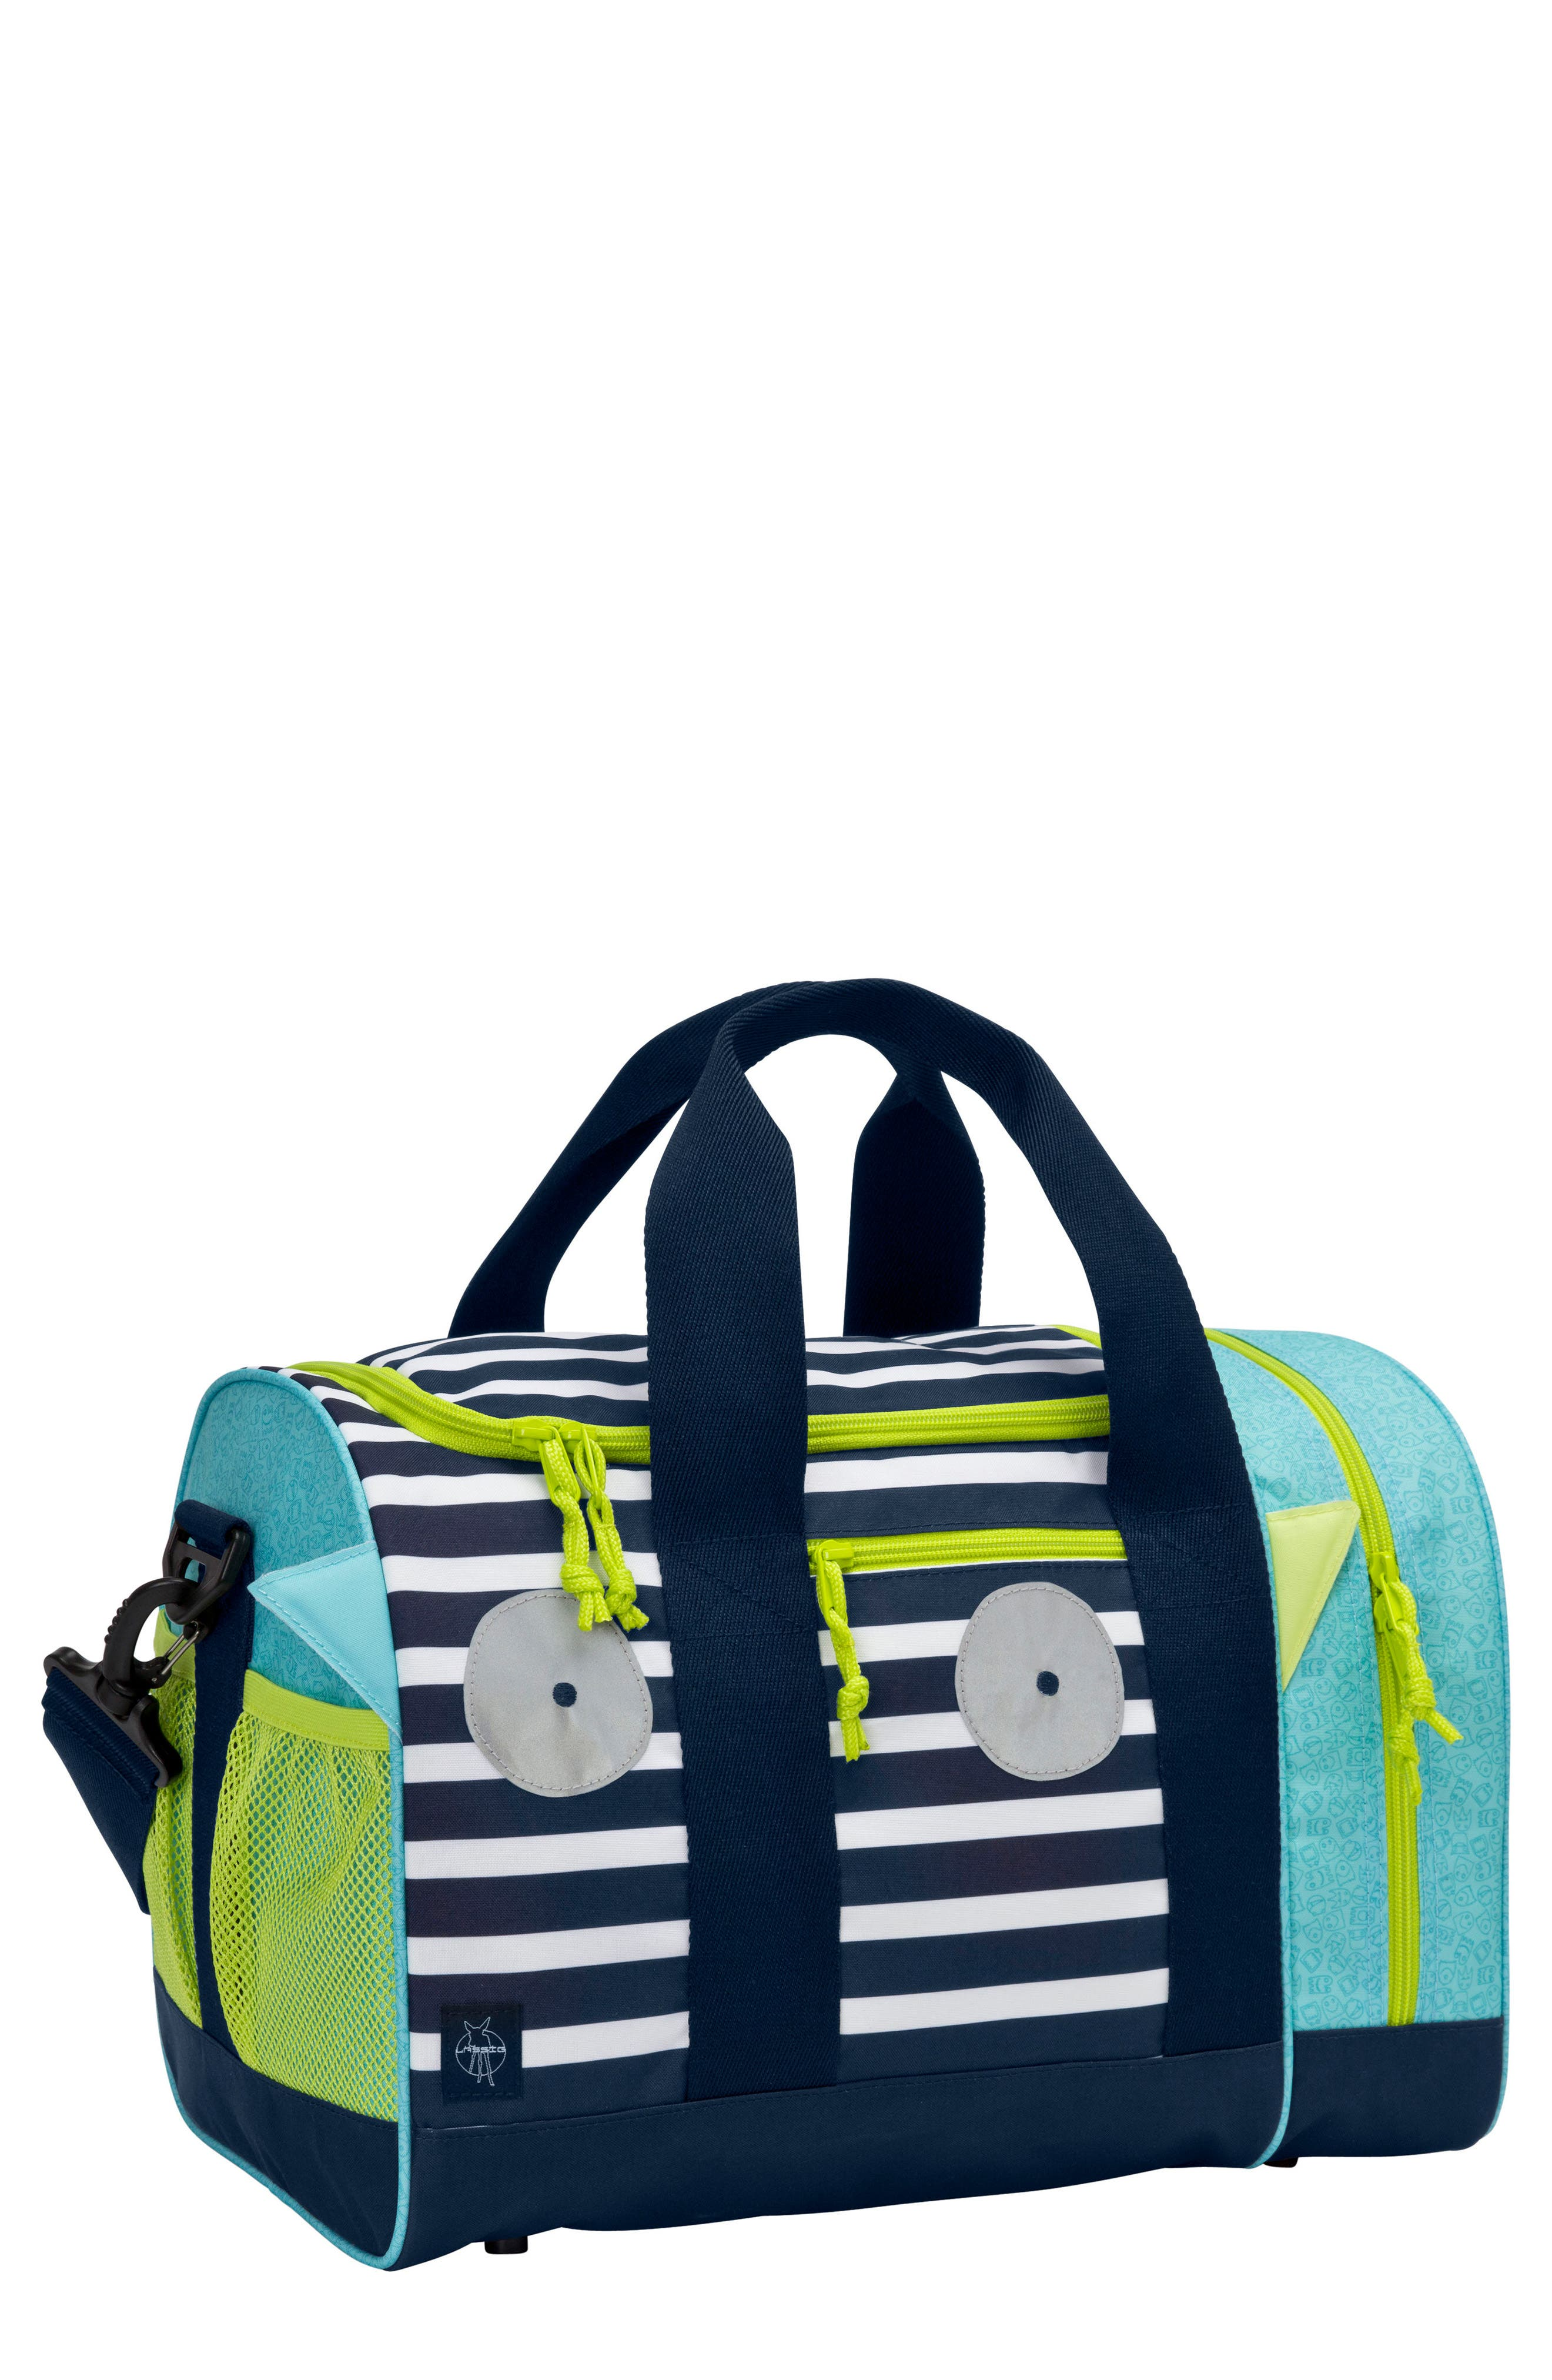 Mini Sports Bag with Glow-in-the-Dark Eyes,                             Main thumbnail 1, color,                             400